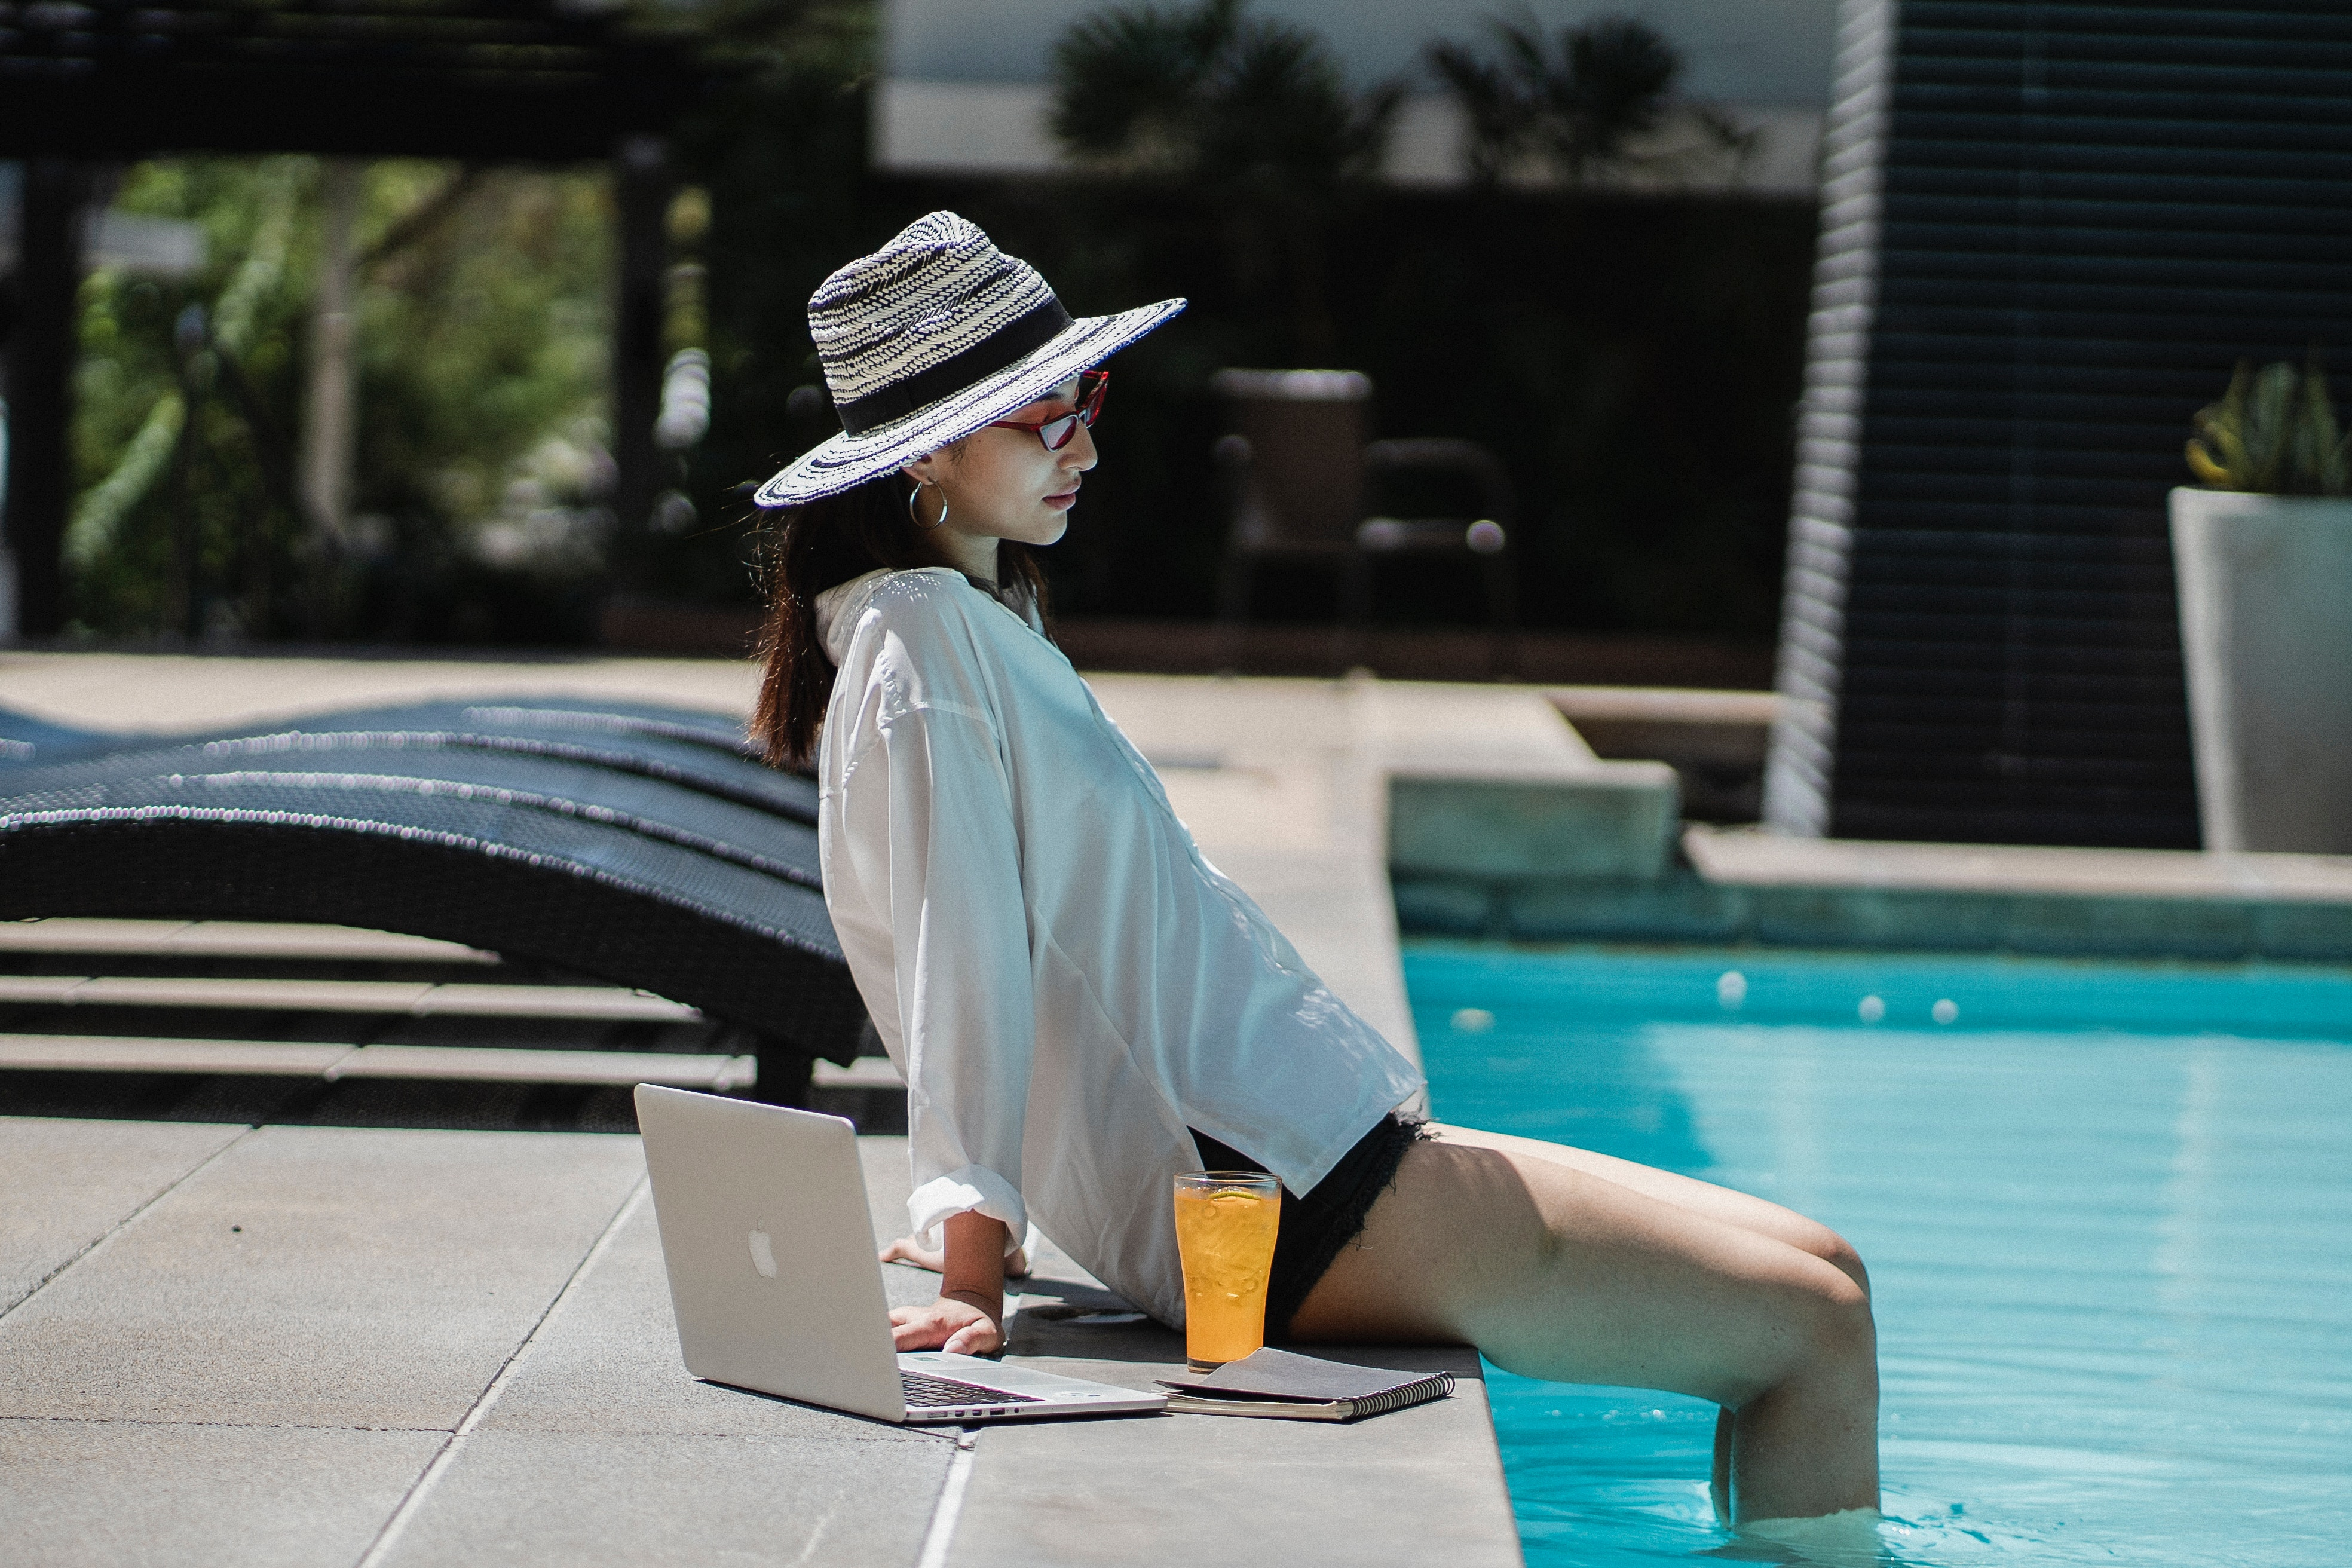 Woman relaxing by pool with laptop